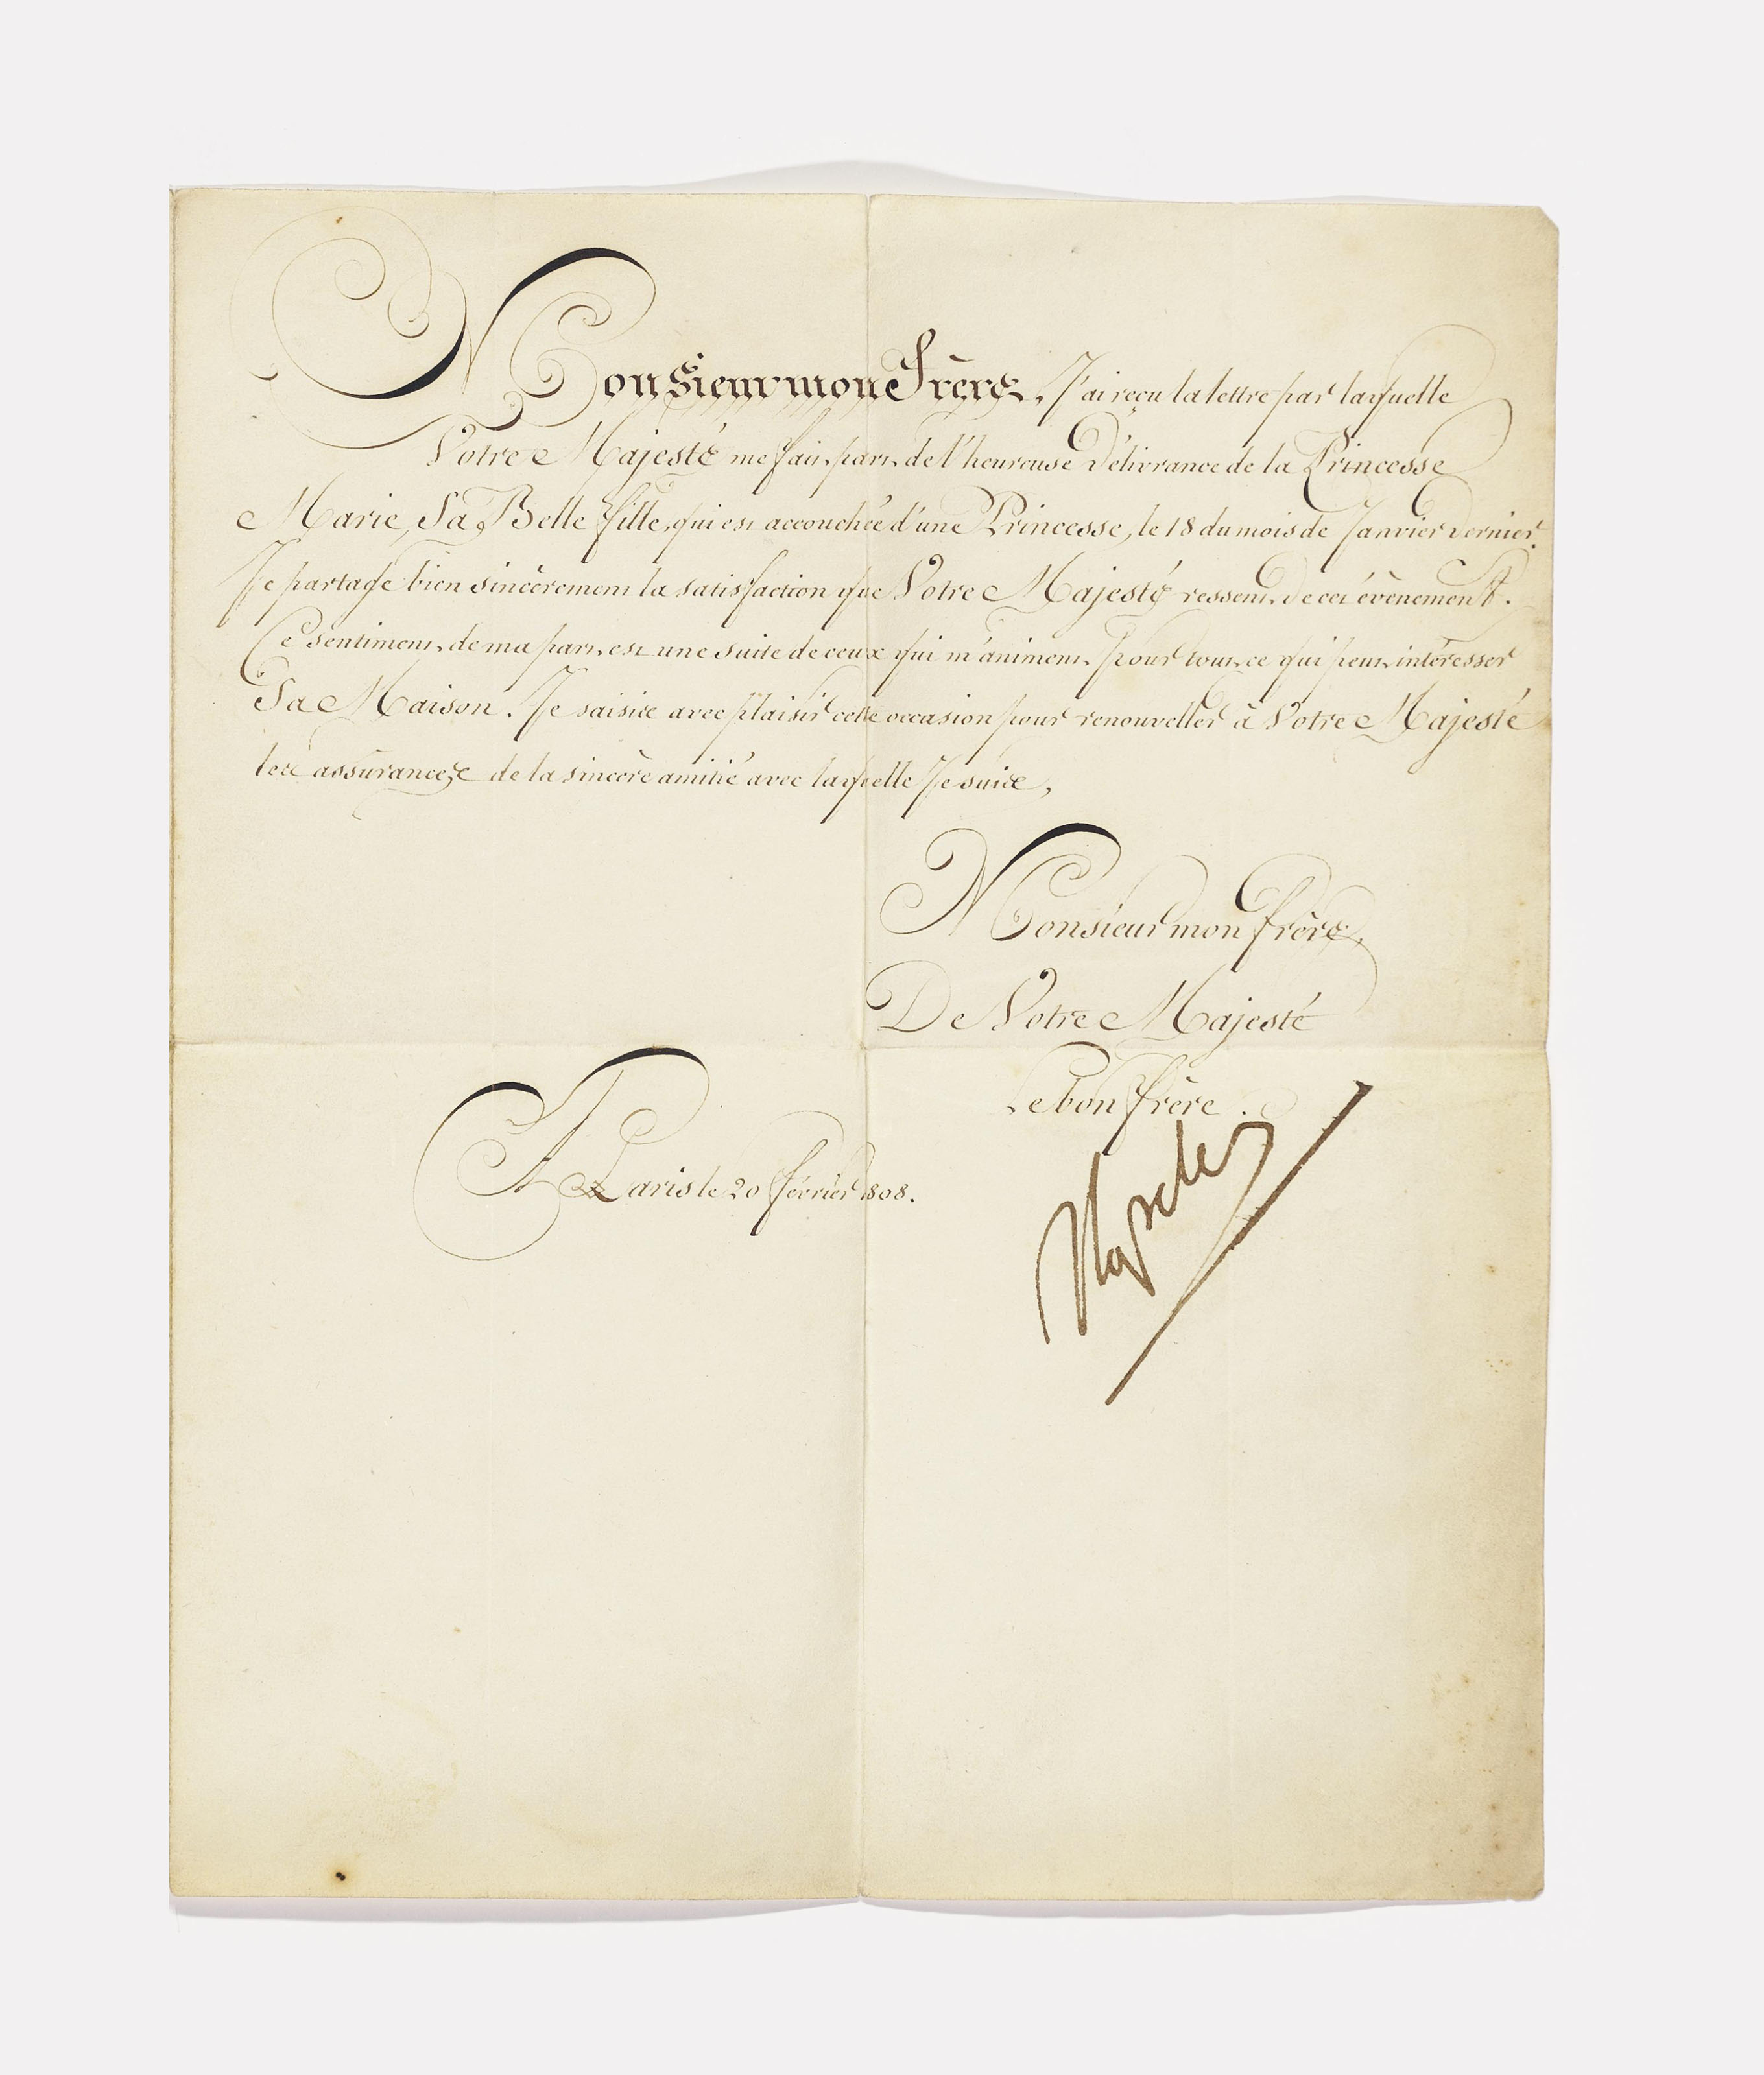 NAPOLEON I (1769-1821), Emperor of the French. Letter signed ('Napoleon') to Christian VII, King of Denmark, Paris, 20 February 1808, congratulating him on the birth of a granddaughter [Princess Vilhelmine Marie], one page, 4to, integral address leaf (minor discolouration, seal tear); with similar letters of courtesy to Frederick VI, King of Denmark, signed by Joseph Bonaparte as King of Naples and Sicily, 10 May 1808 (split through at centre fold), Louis Bonaparte as King of Holland, 22 September 1808, and Joachim Murat as King of Naples, 19 January 1811.	 (4)